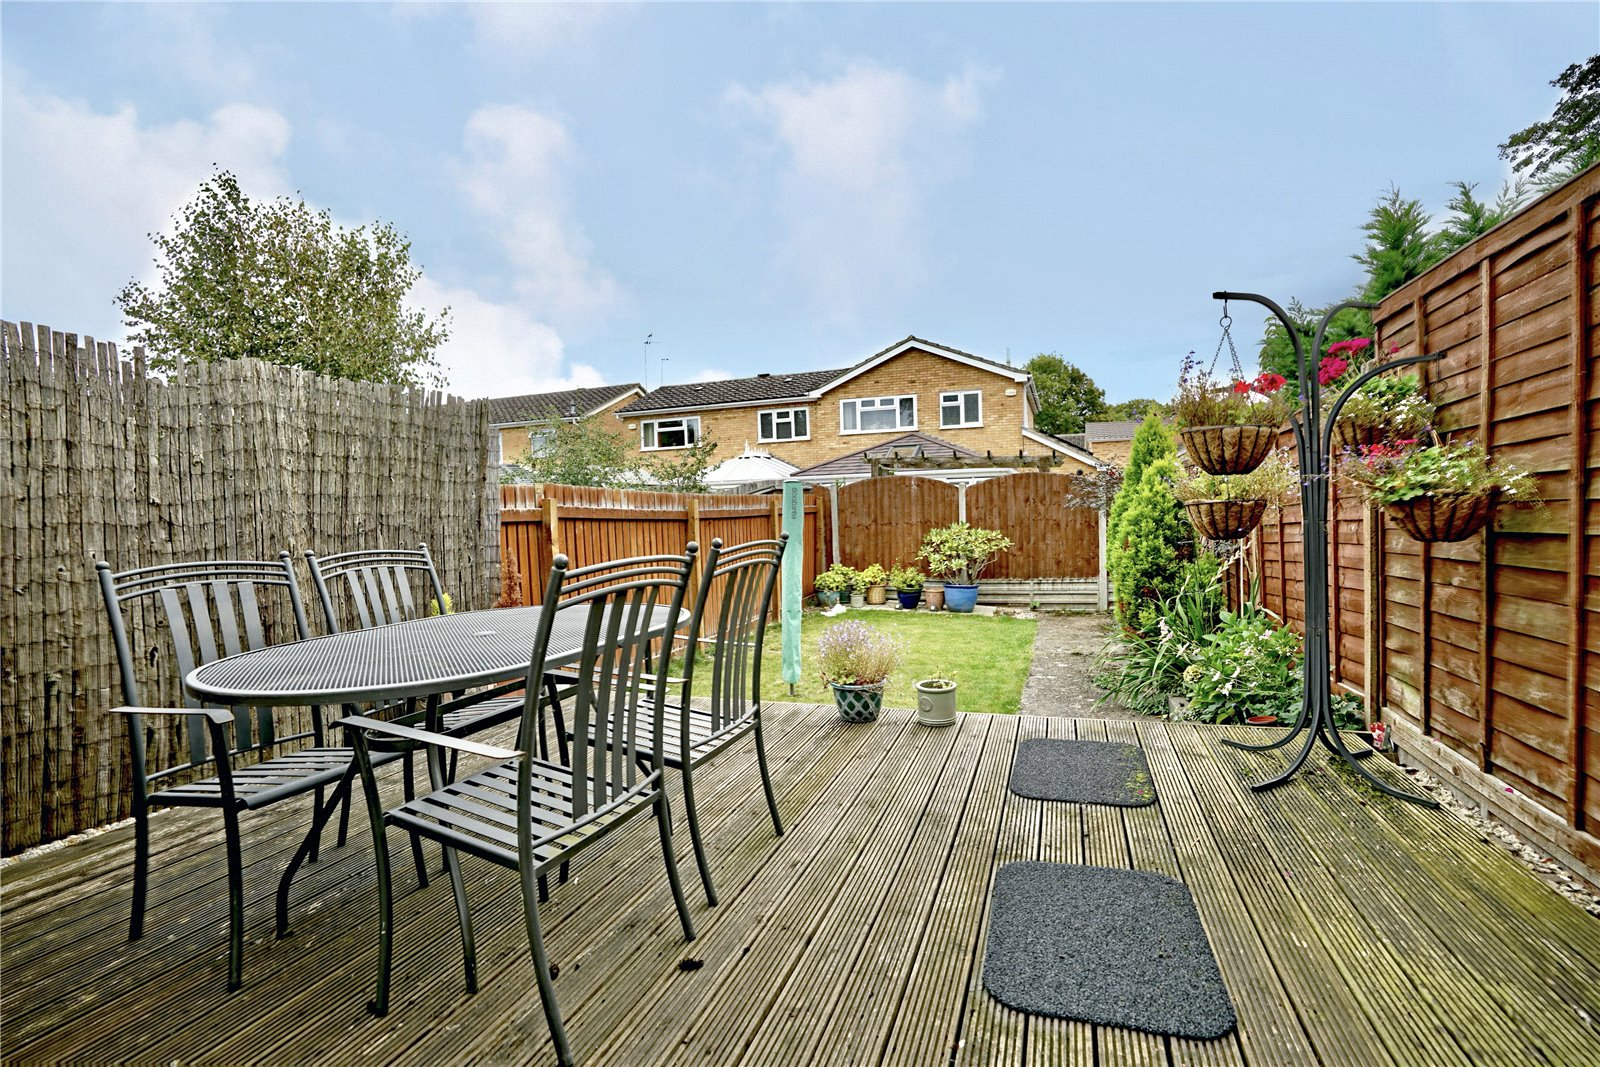 2 bed house for sale in Chestnut Walk, Little Paxton  - Property Image 6